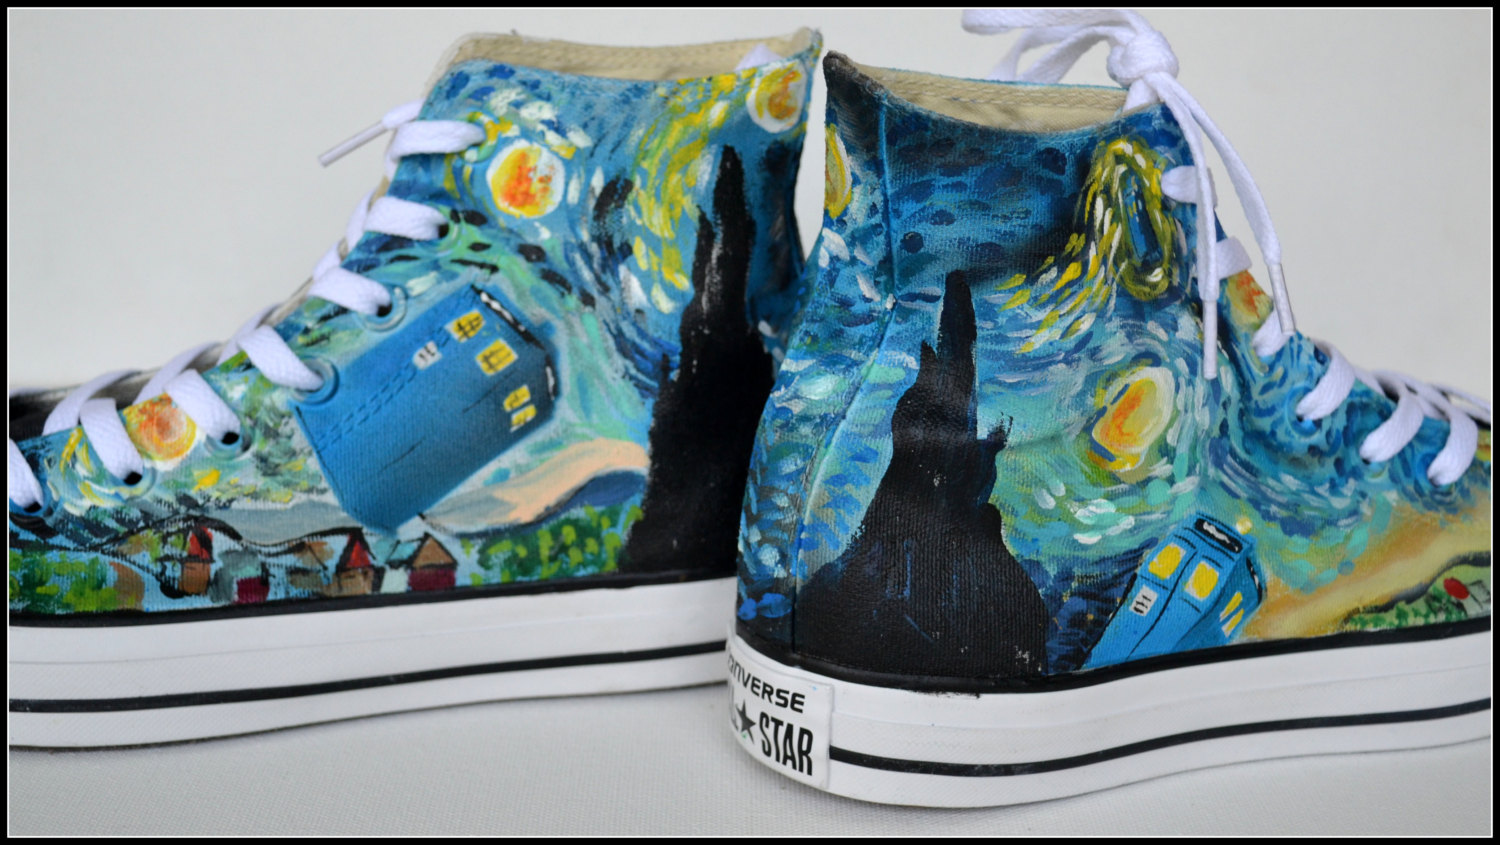 Drawn vans dr who Converse Who converse shoes painted